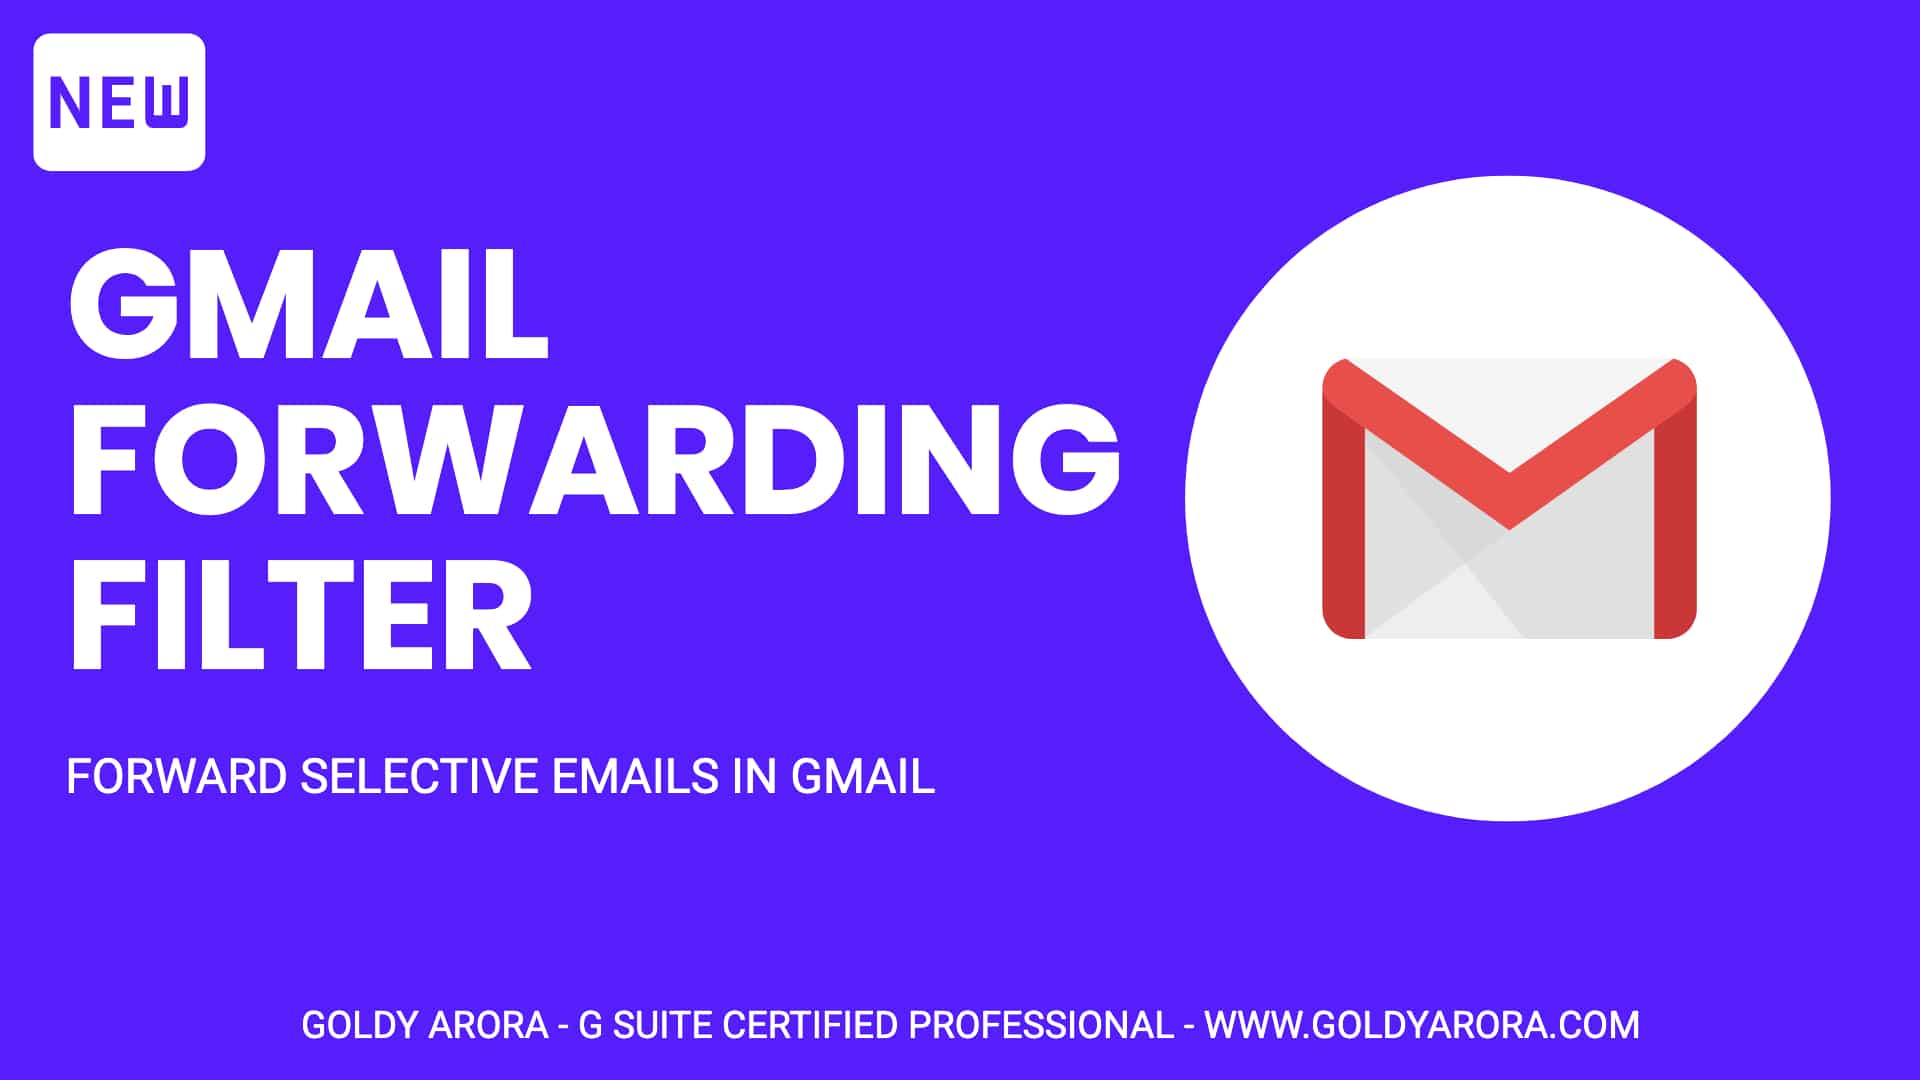 Gmail Forwarding Filter - Forward selective emails in Gmail